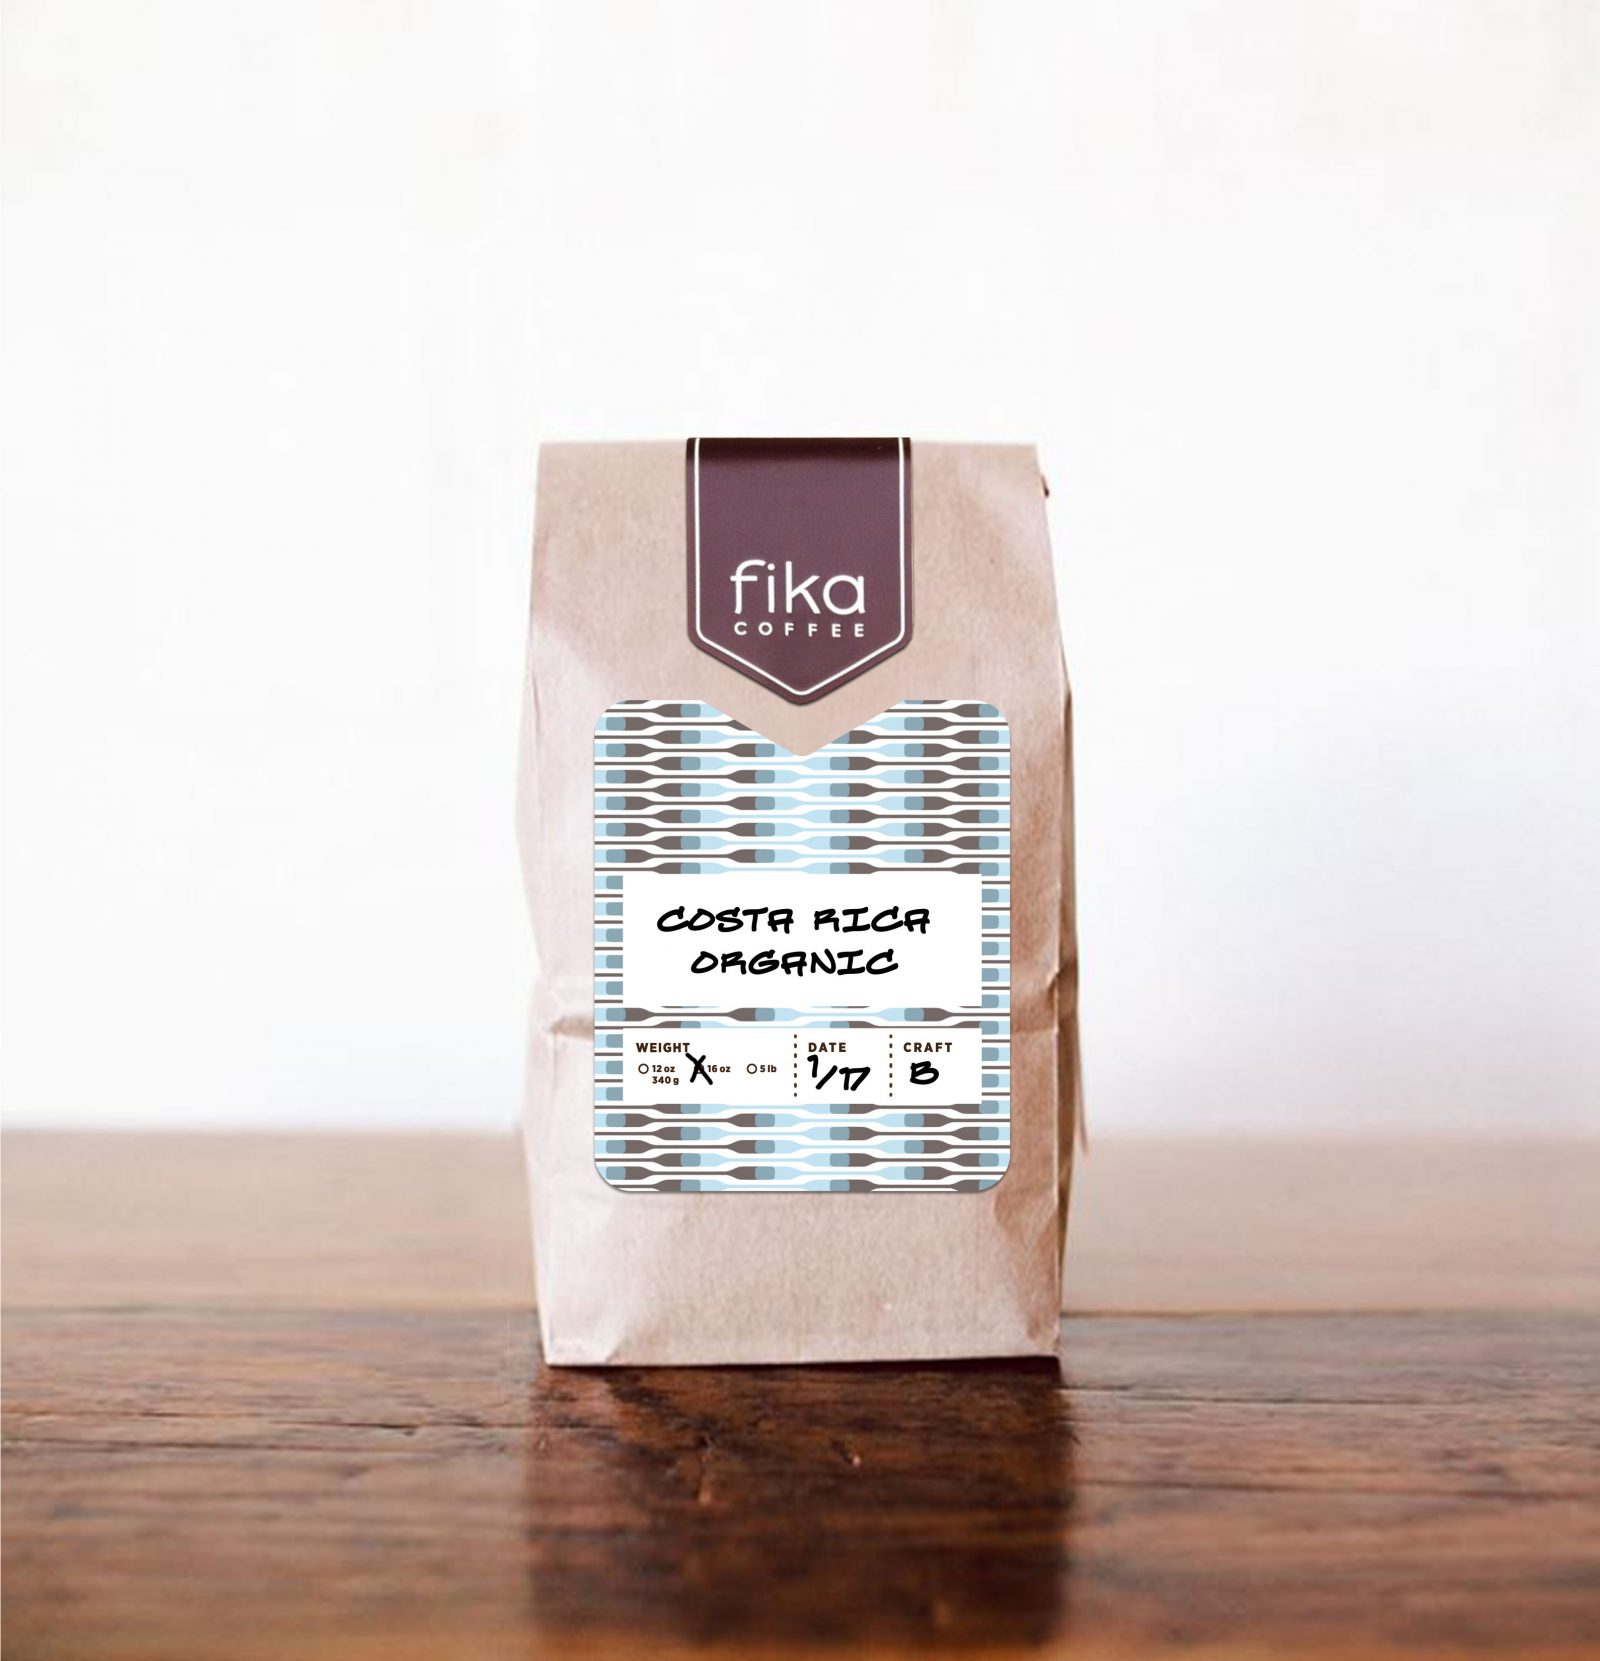 Fika Coffee Packaging Label Sticker-tall 2016-B